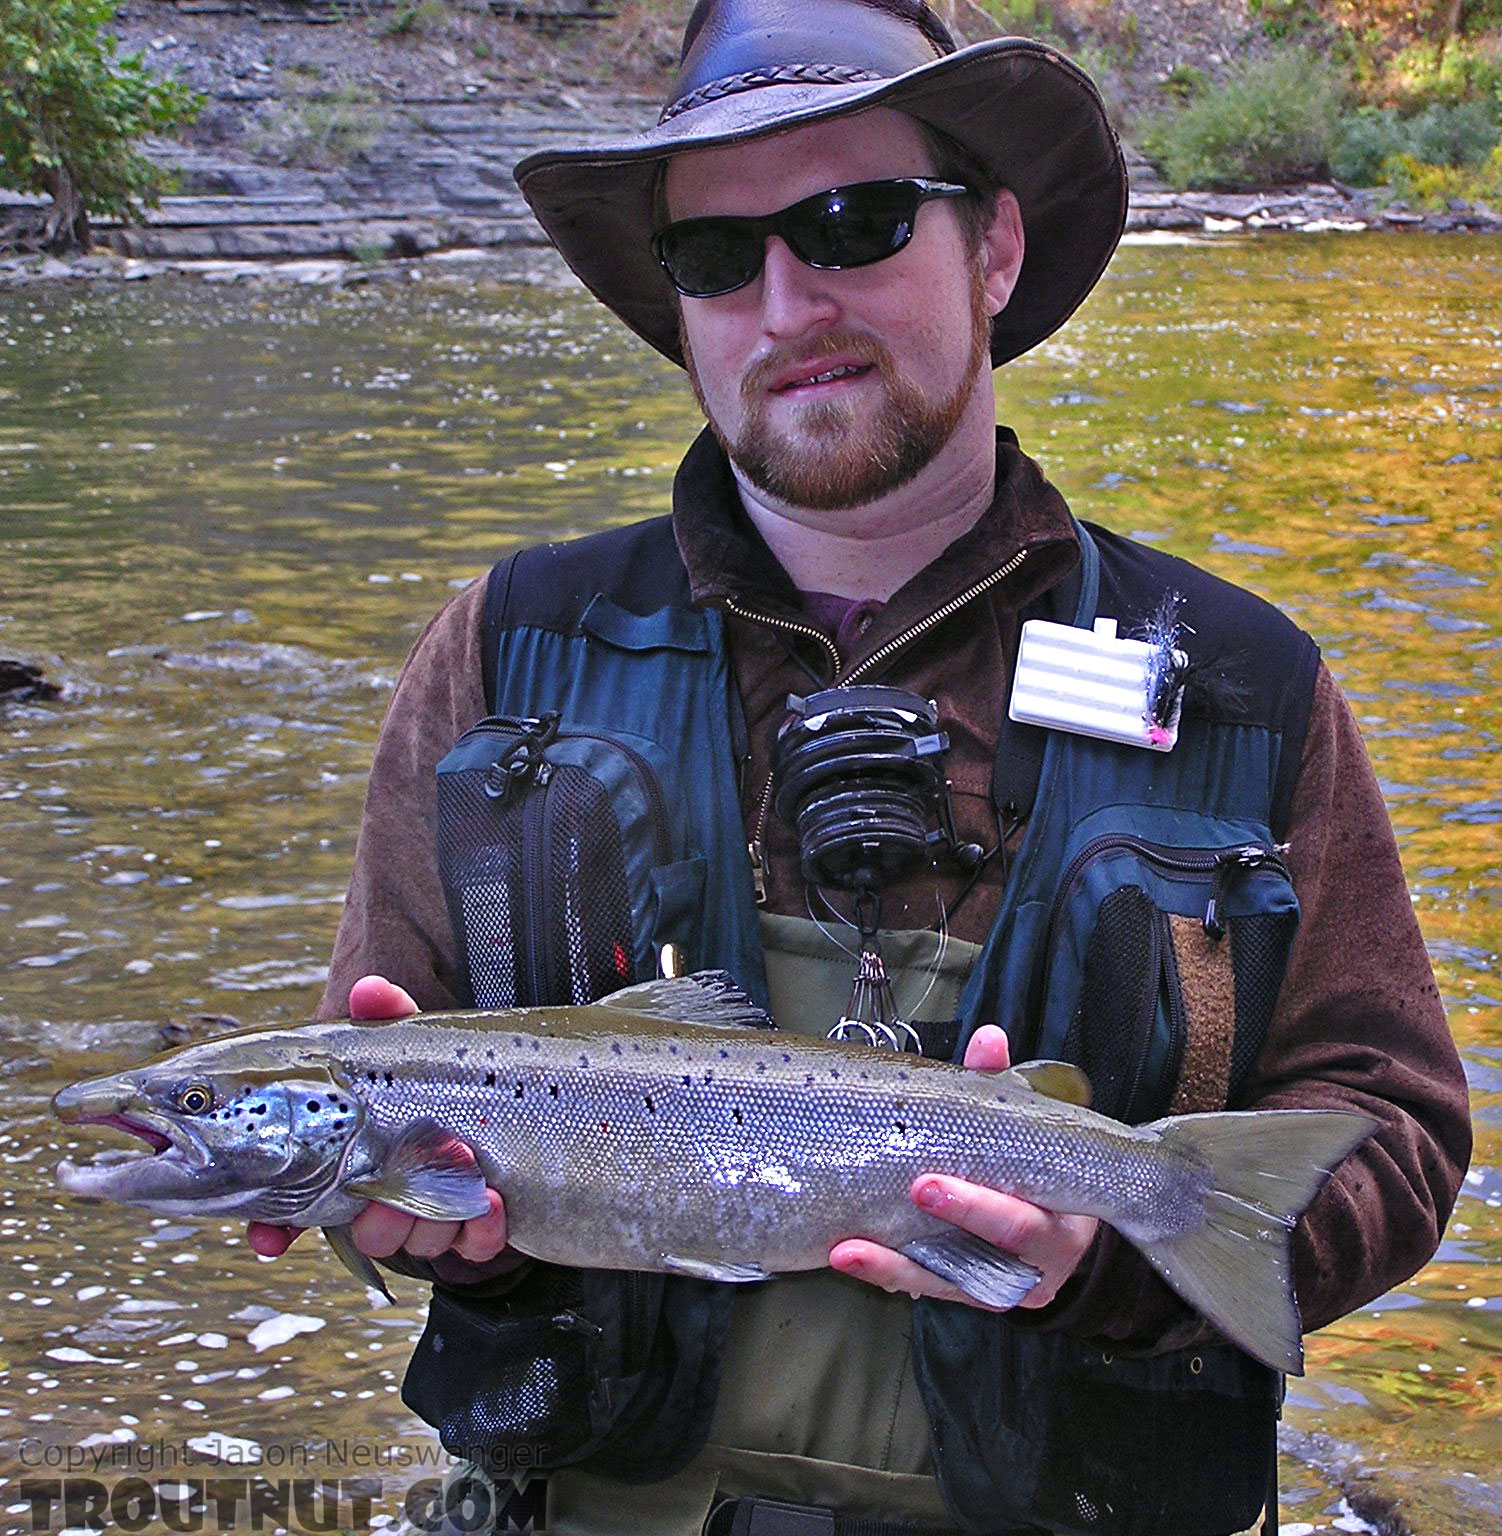 "This was my first Atlantic Salmon ever, a 23"" landlock from a Finger Lakes tributary.  It rose up from the murky water, gulped my bright streamer near the surface, and sank down, almost like the rise form of a trout sipping a tiny bug.  I set the hook and landed the fish after a fight that exceeded my high expectations. From Fall Creek, Ithaca Falls in New York."